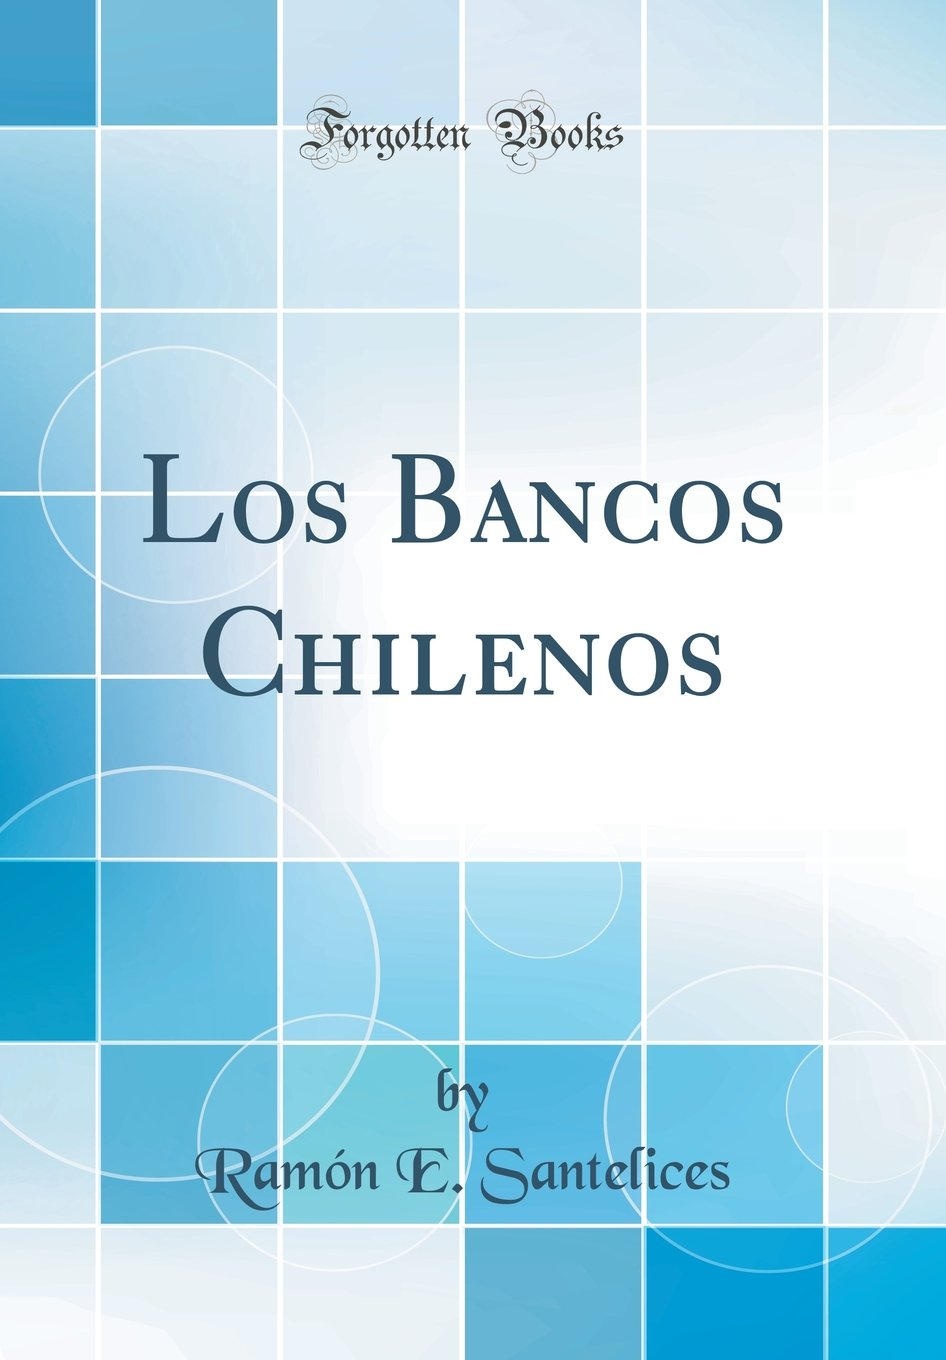 Los Bancos Chilenos (Classic Reprint) (Spanish Edition): Ramón E. Santelices: 9780364599426: Amazon.com: Books